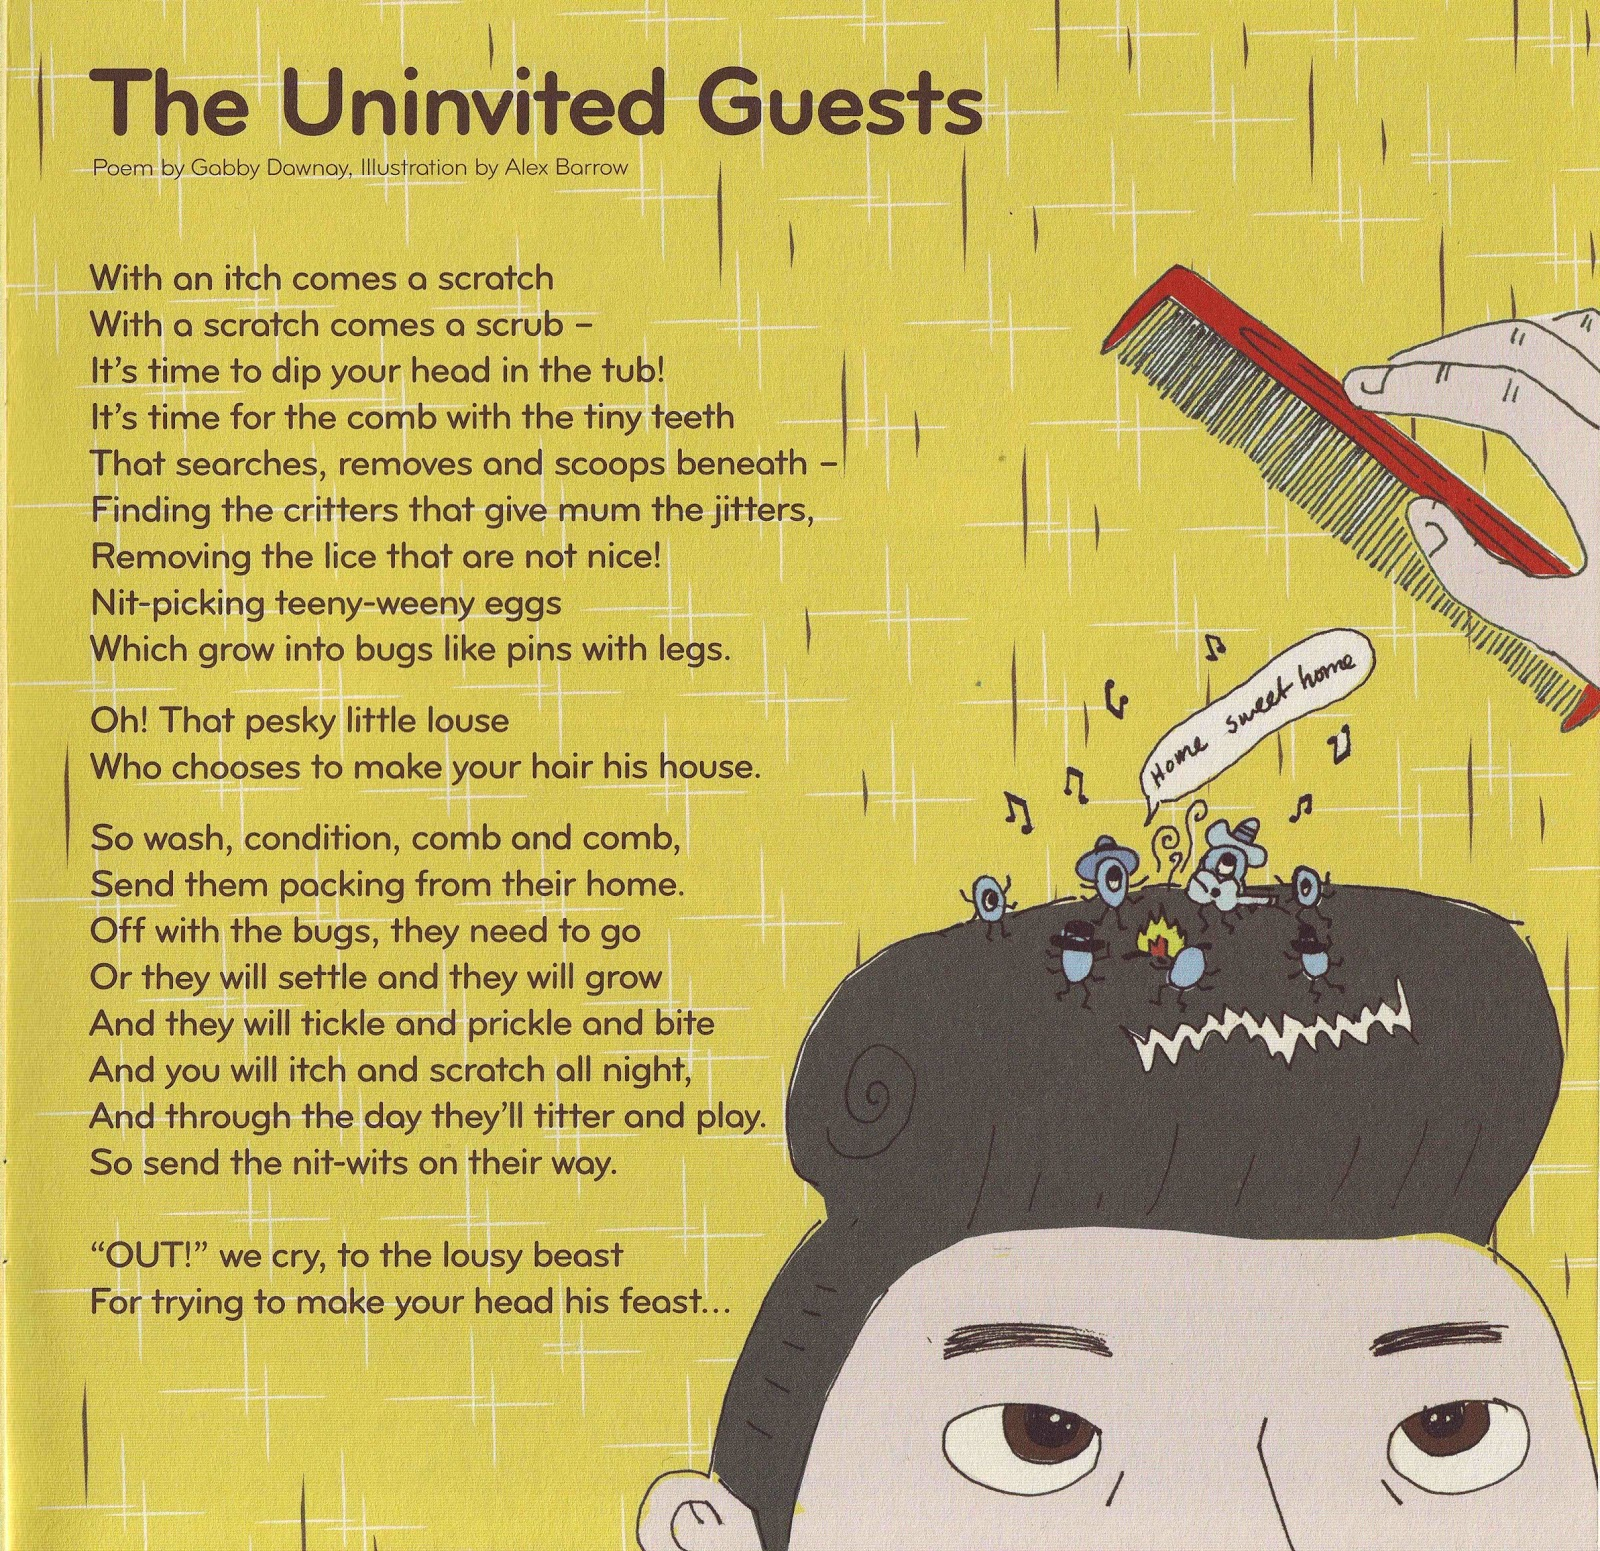 an uninvited guest essay Uninvited guest prev poem next poem  mental illness poem anyone who has suffered from depression will understand this poem i urge you to fight there is a light at the end of the tunnel featured shared story short very rich in words, true, and to the point i love this poem, great job.